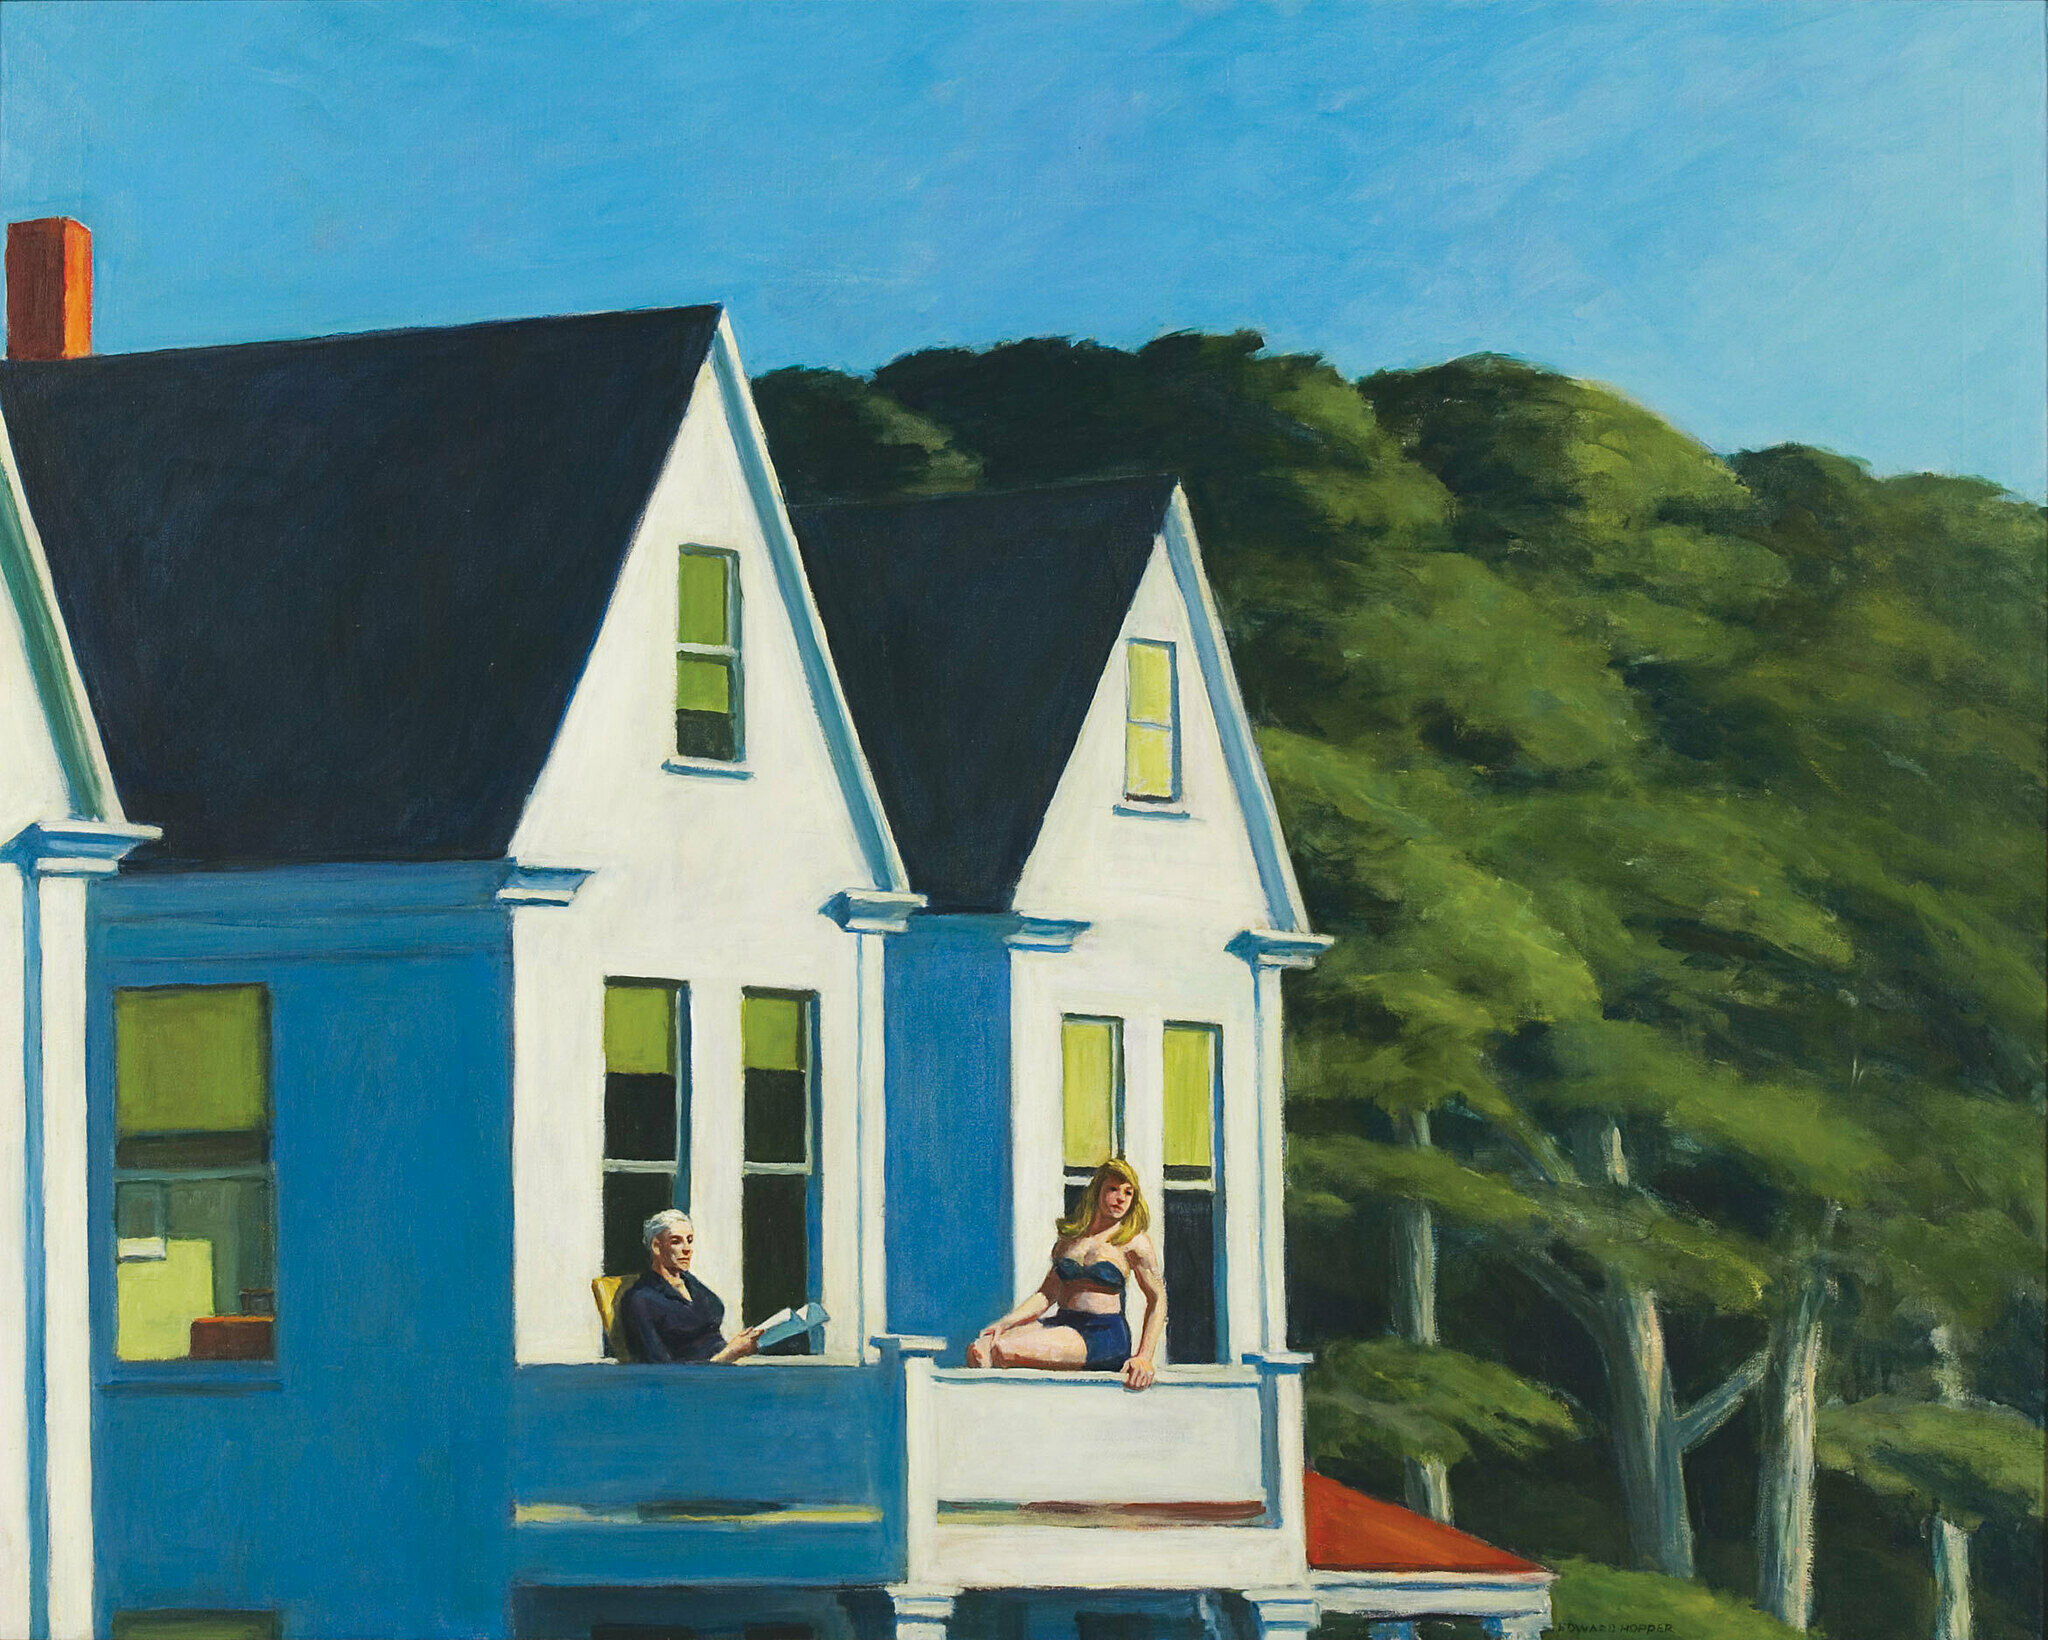 A painting by Edward Hopper. A woman and man sit in the sun on a second-story balcony.